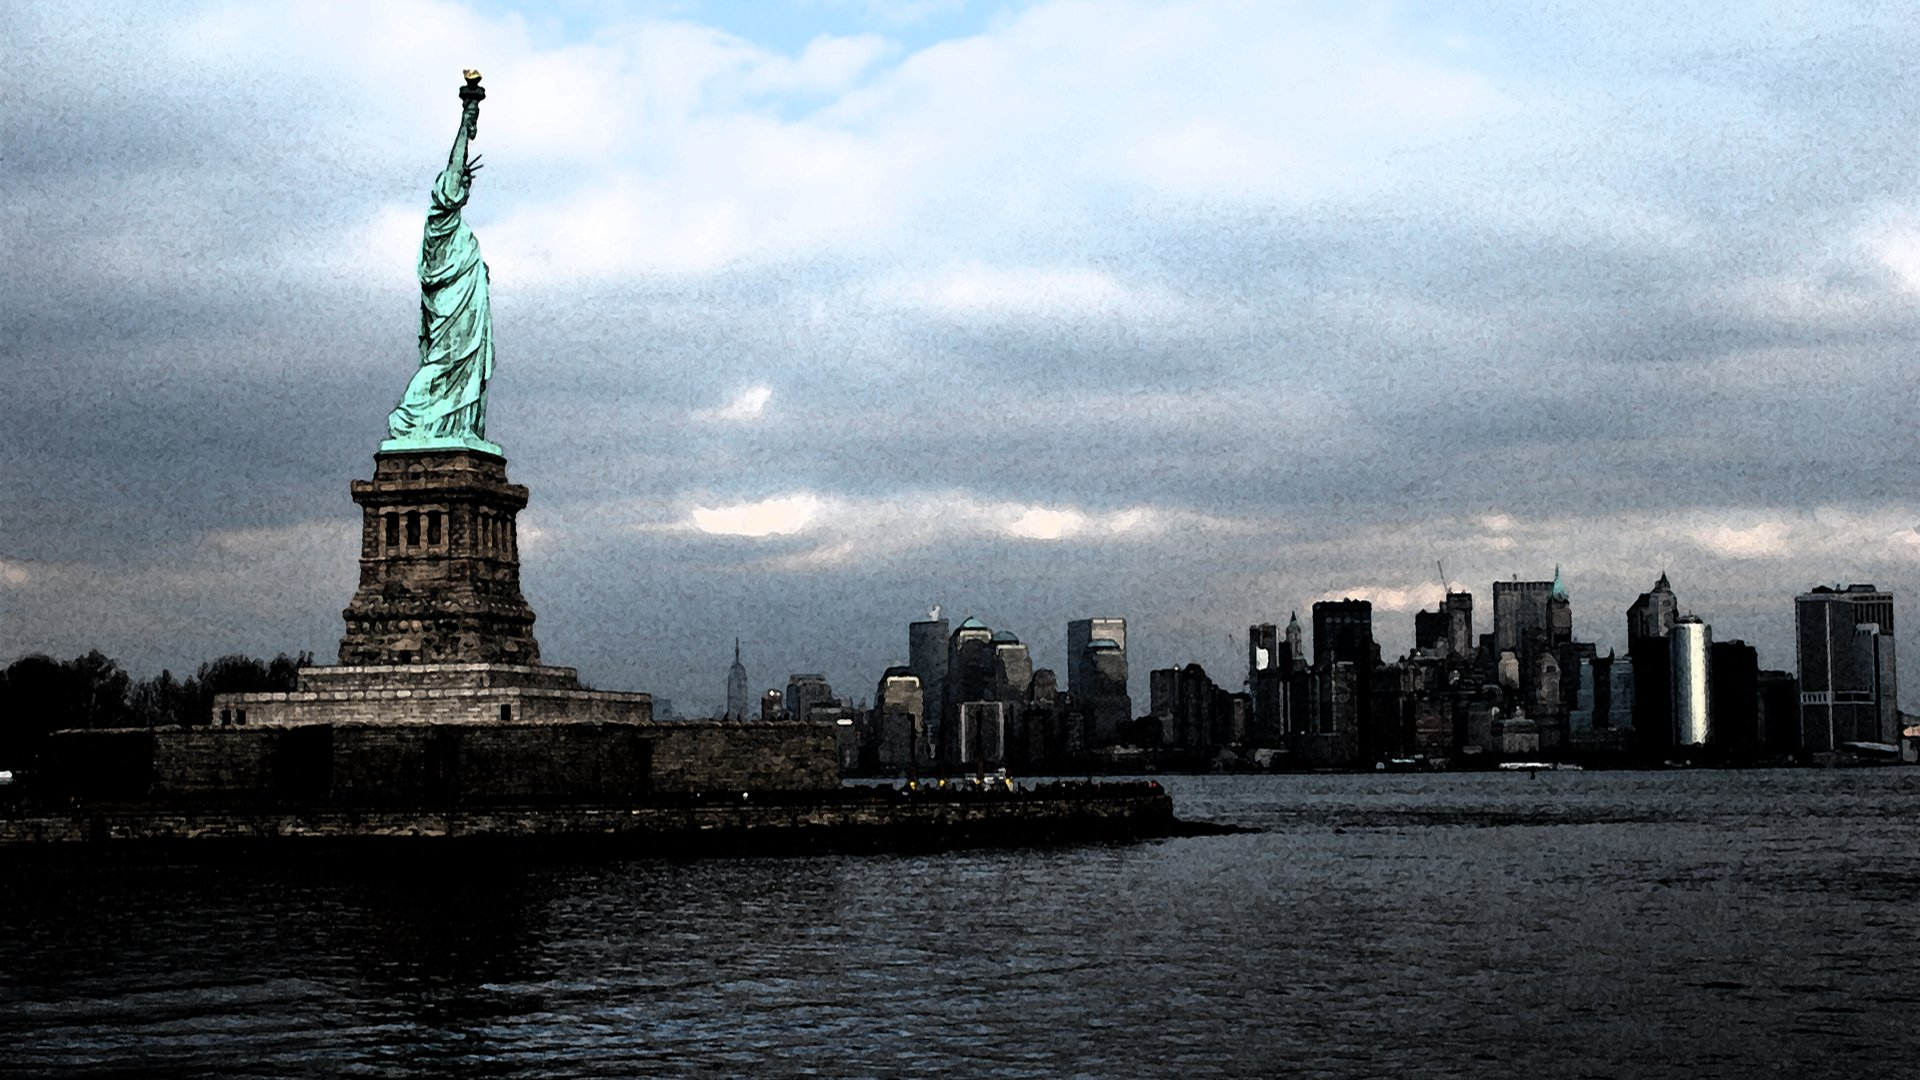 Statue Of Liberty Hd Wallpaper Background Image 1920x1080 Id